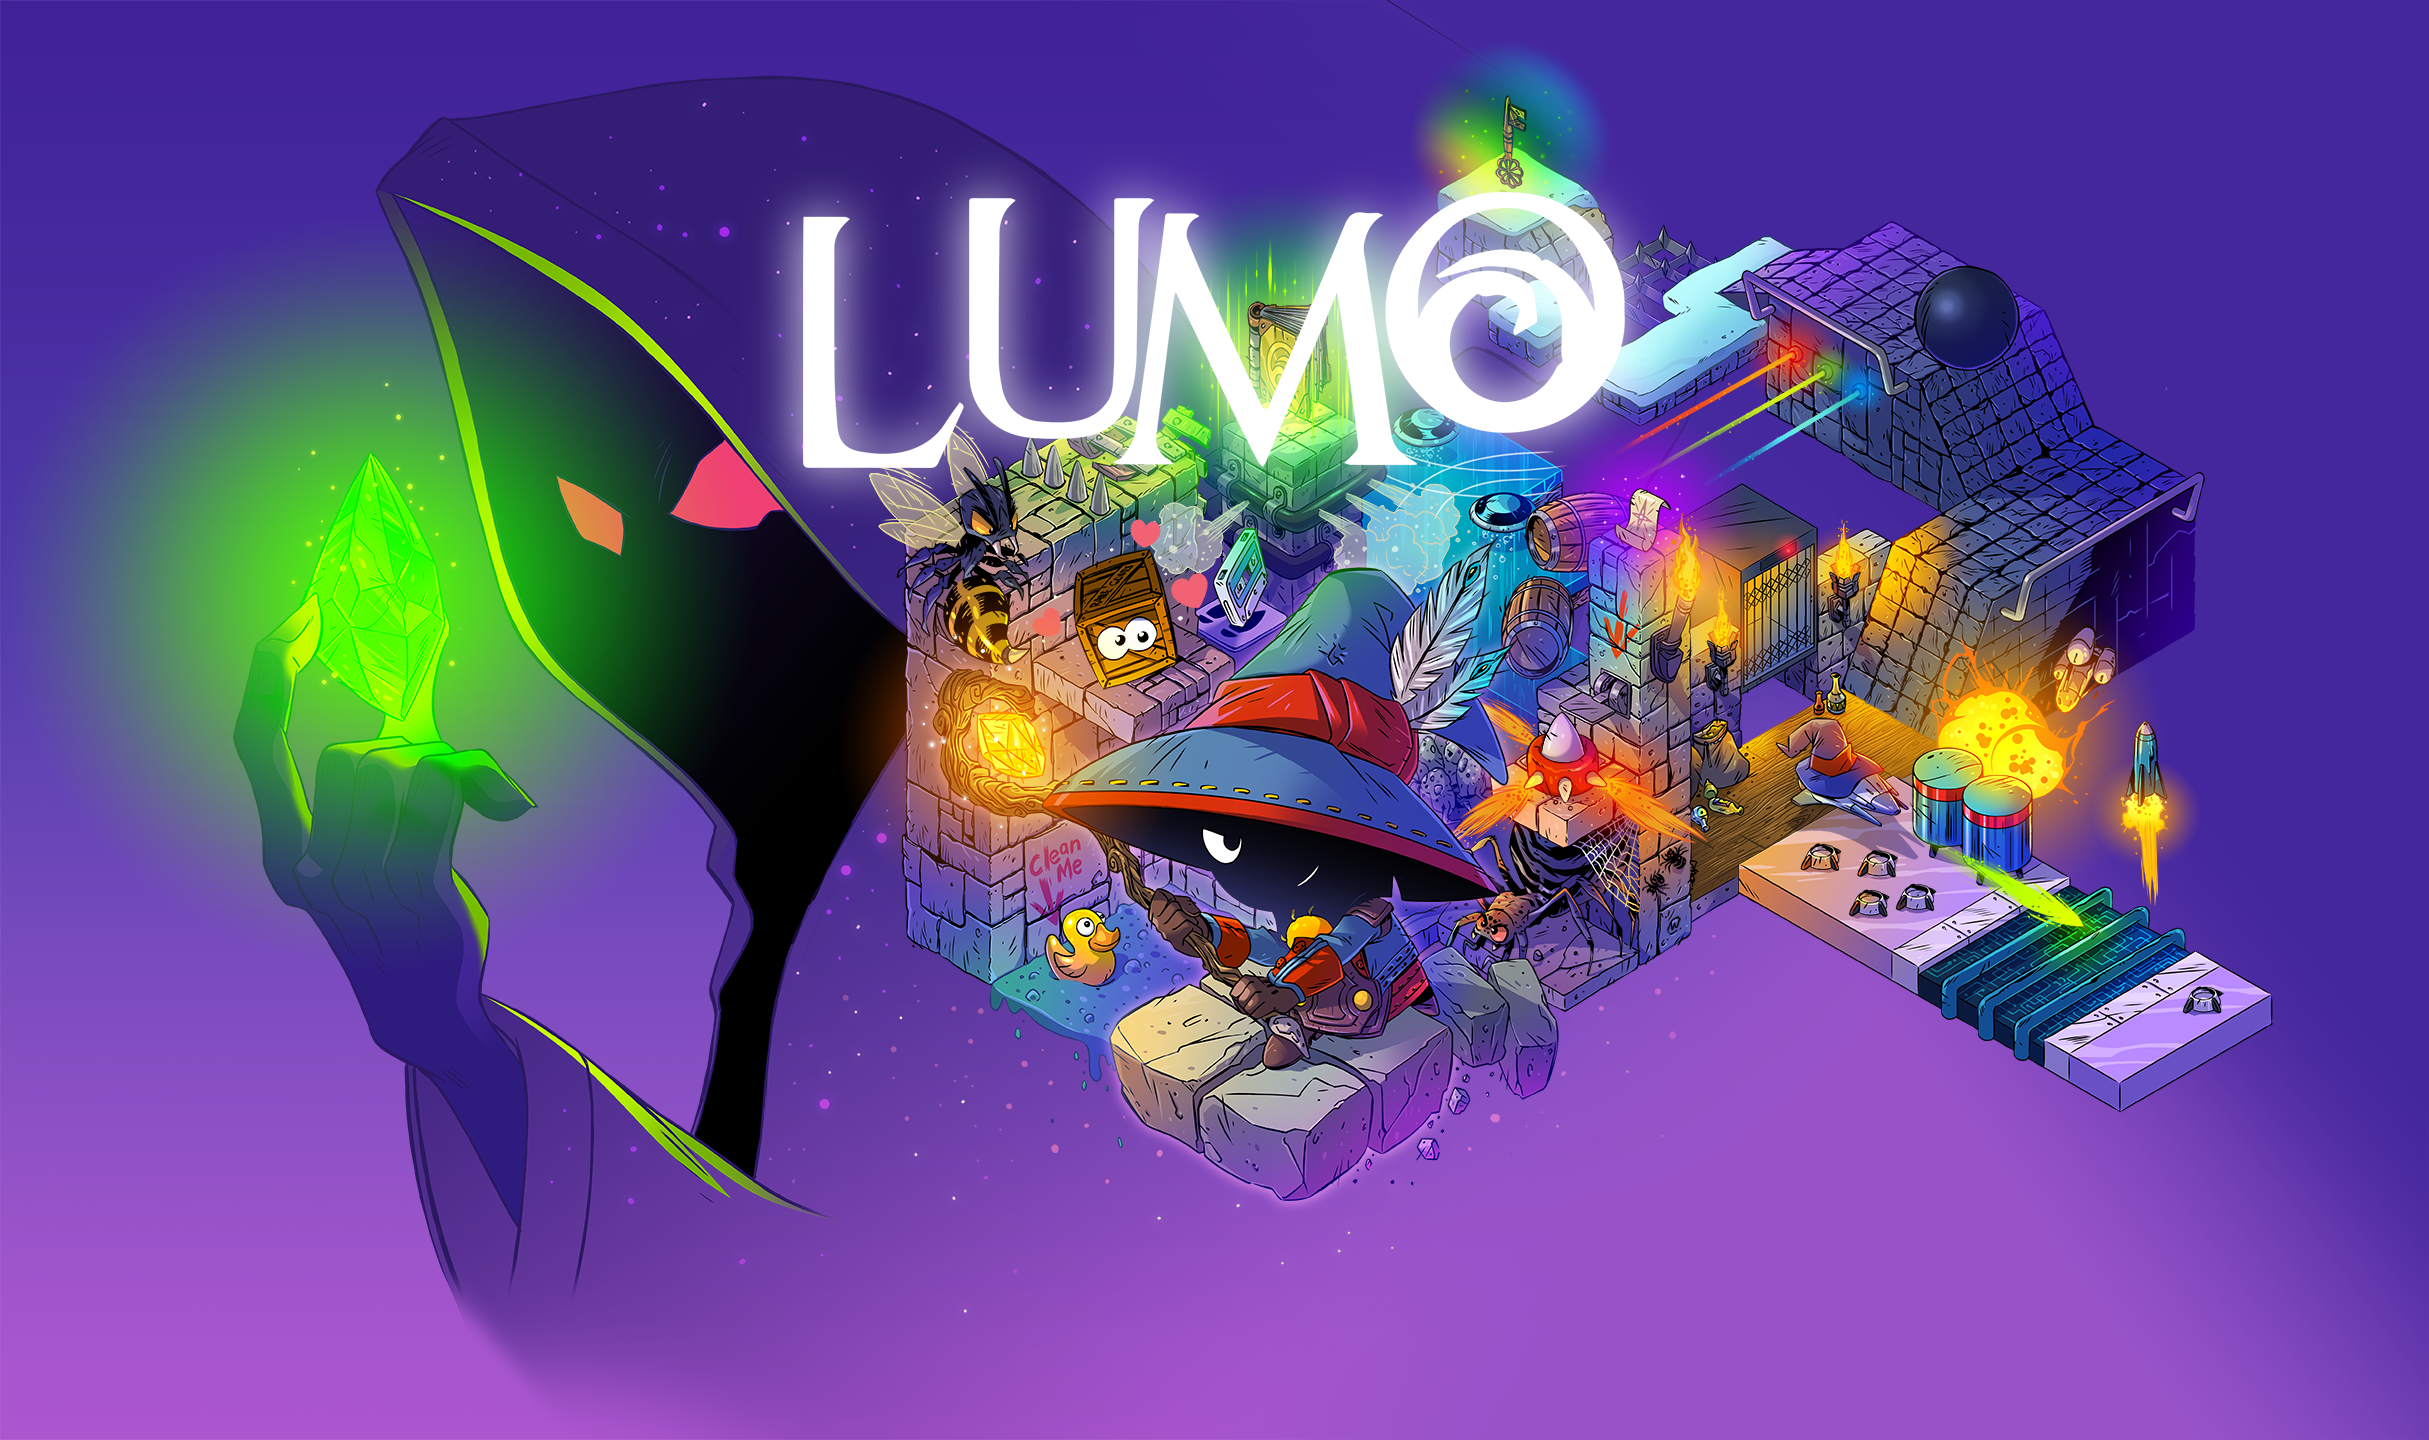 Isometric Puzzler 'Lumo' Coming To Nintendo Switch